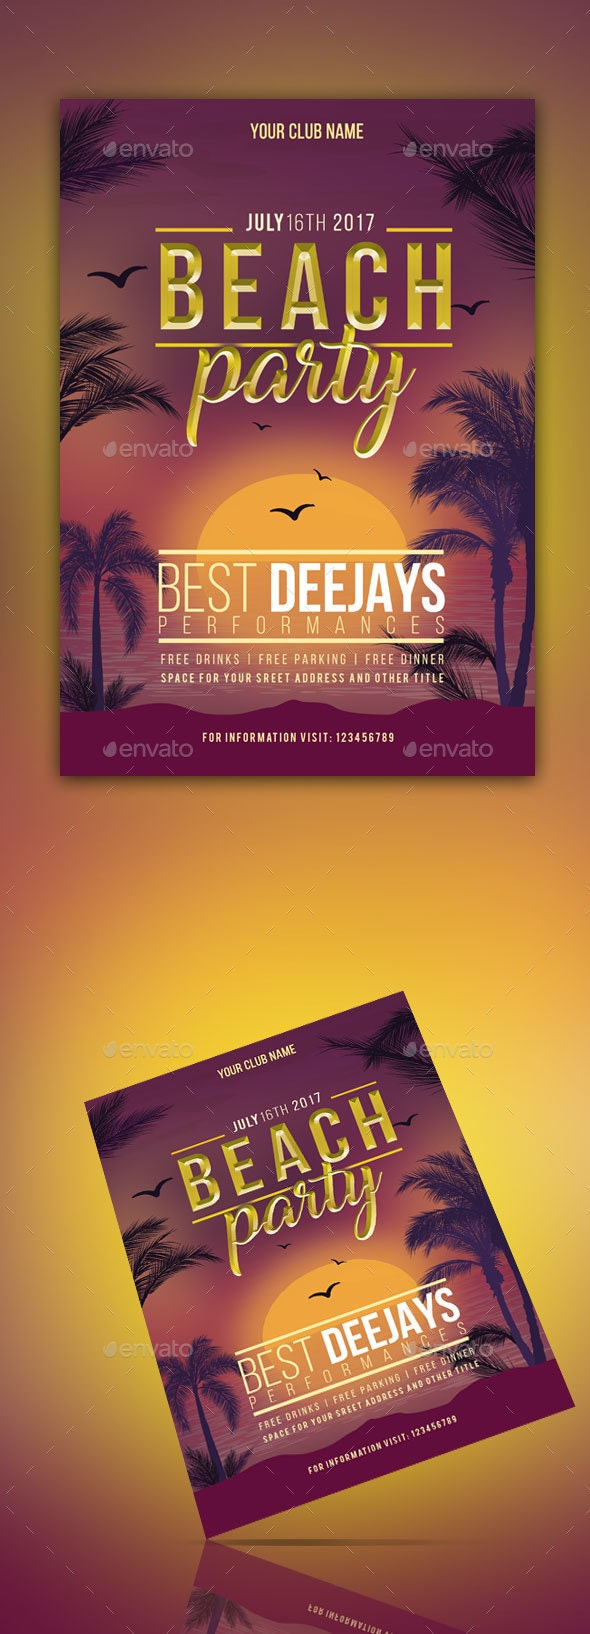 Beach Party Flyer Template - Clubs & Parties Events